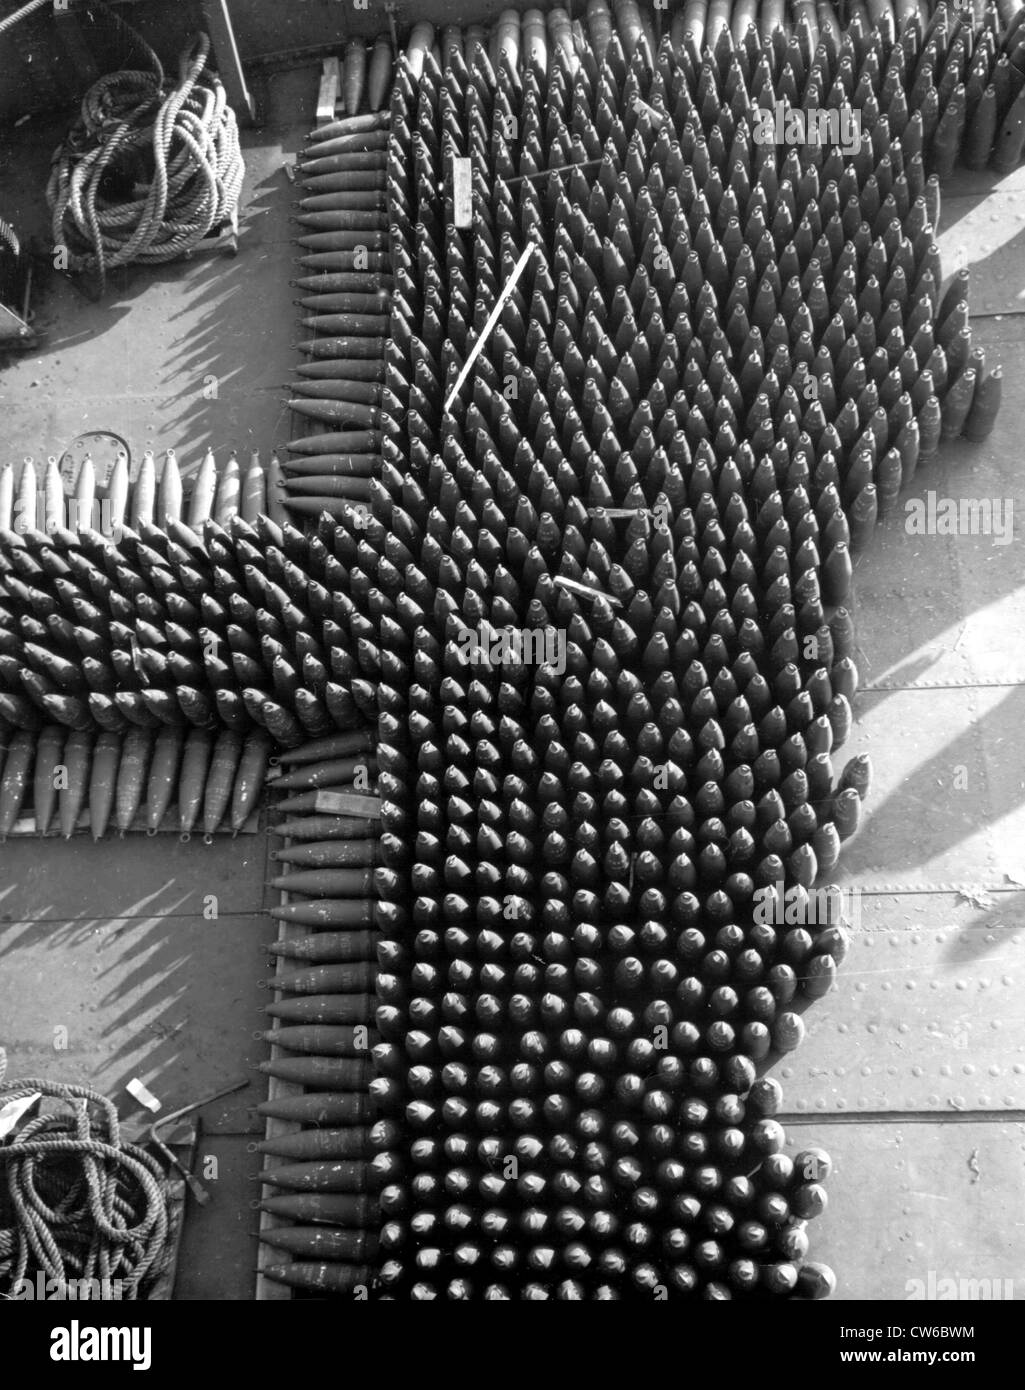 155 mm. shells on board a craft in Marseille(France) January 1,1945 - Stock Image